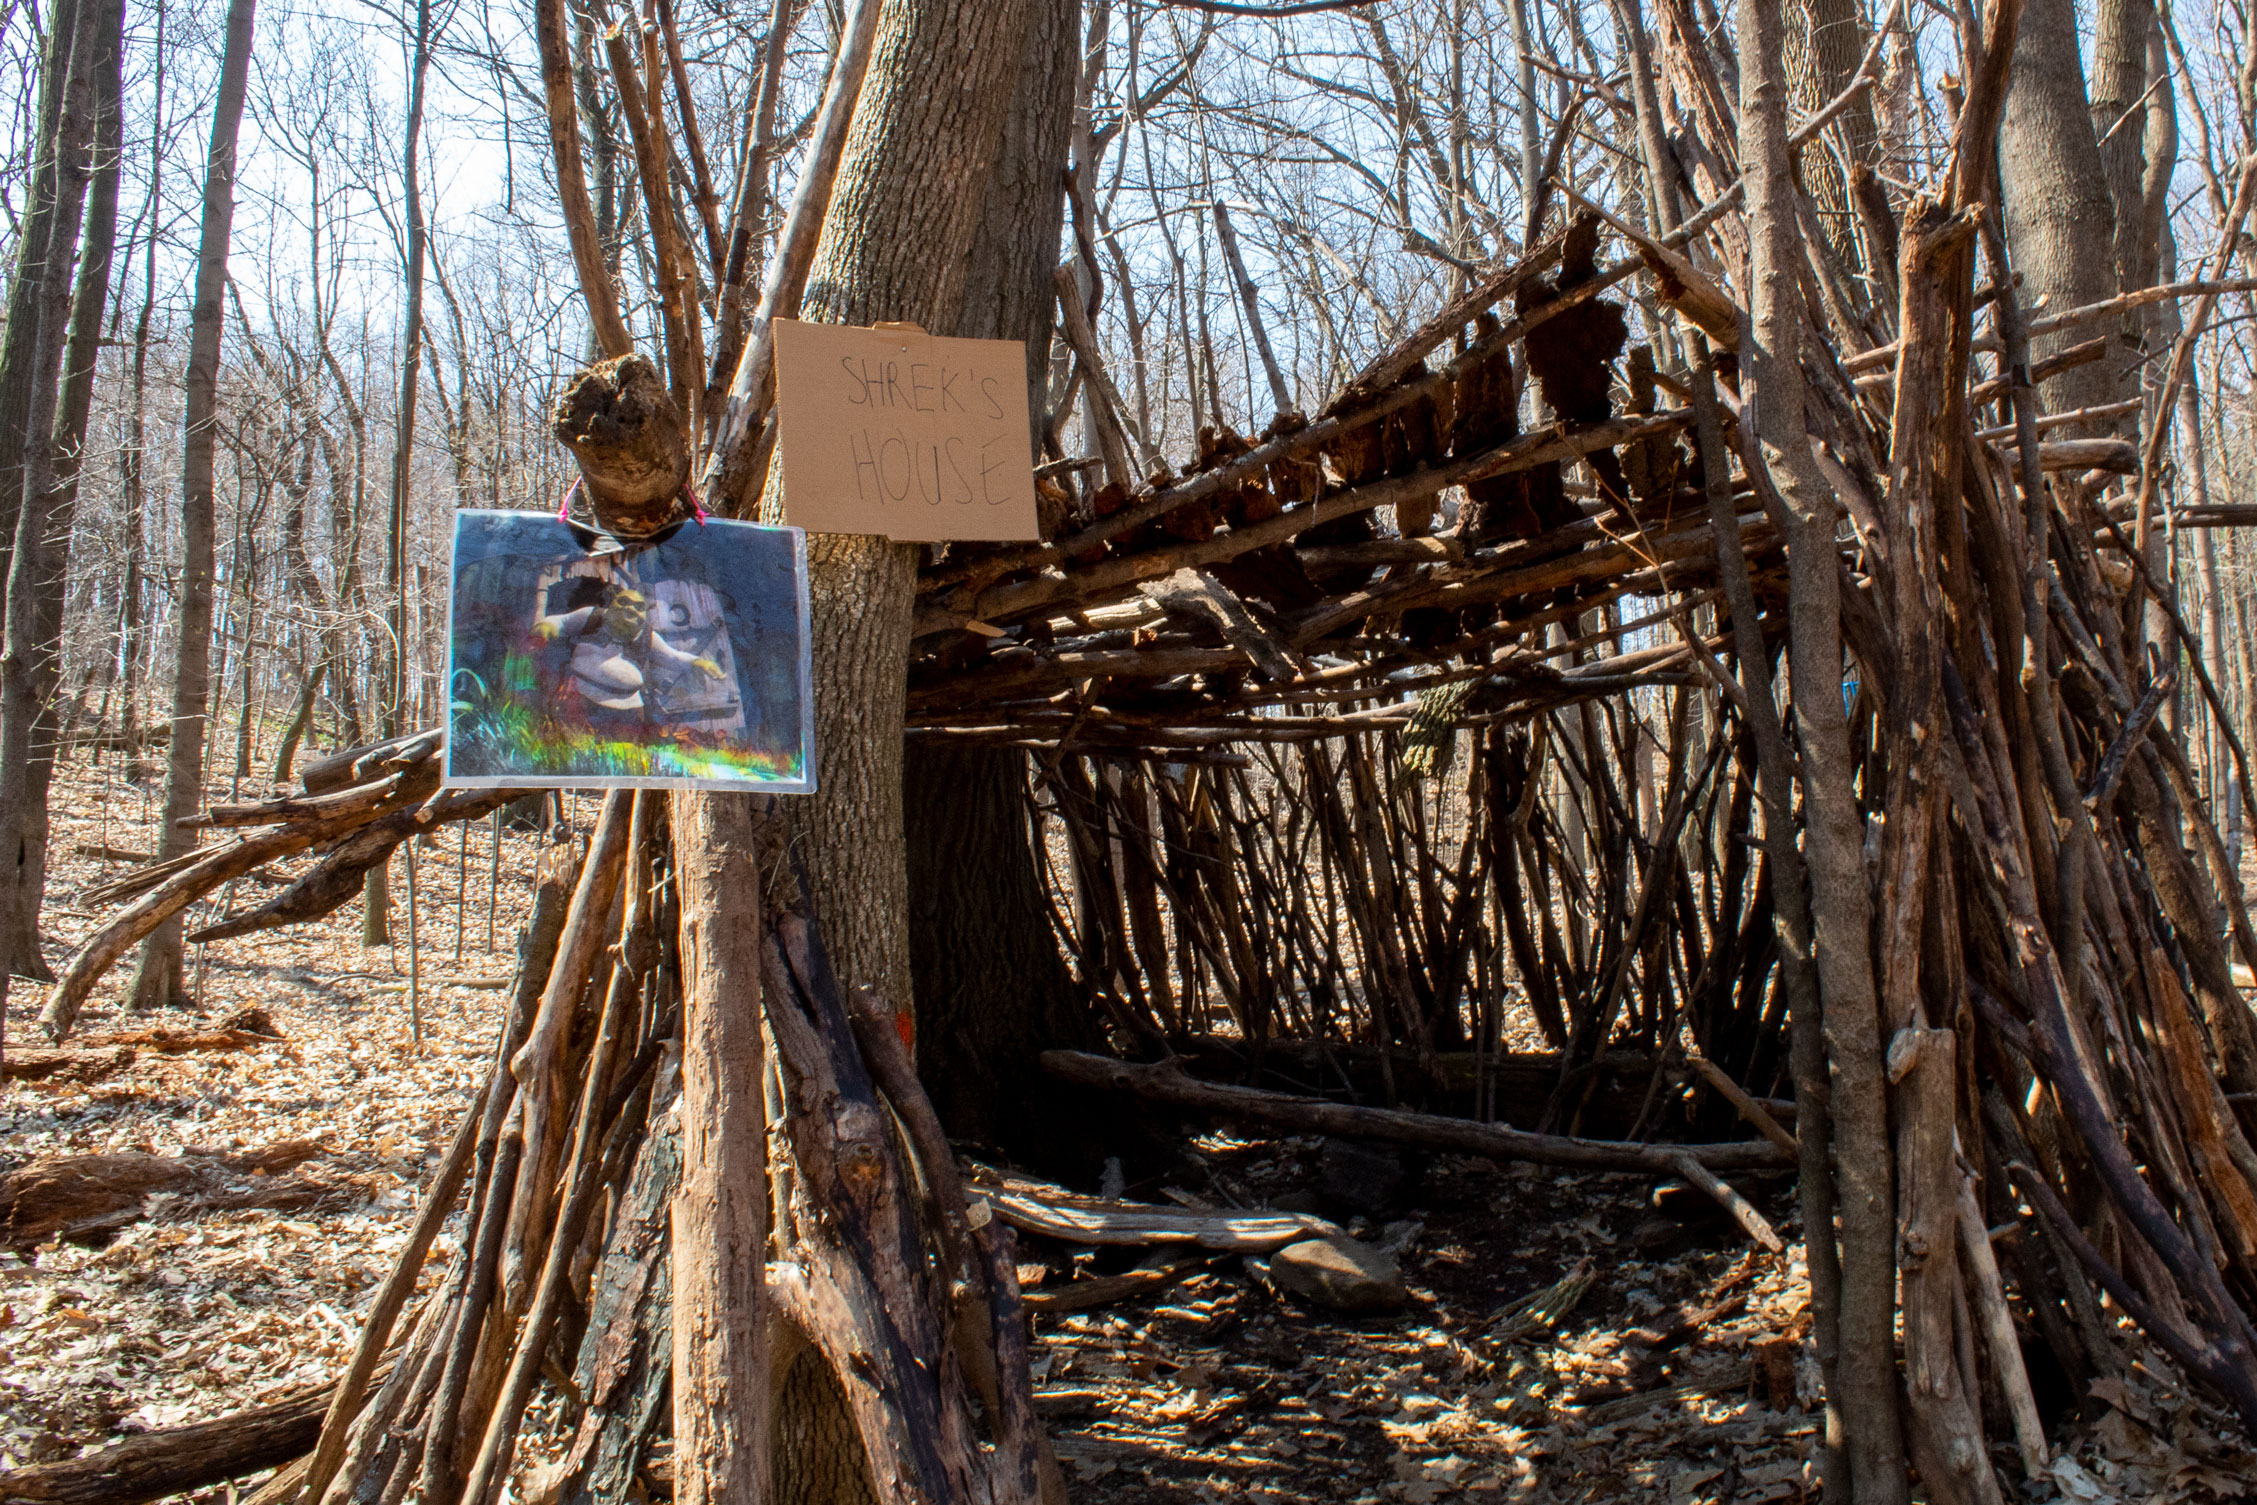 "Hut in the woods constructed out of sticks with a sign designating it ""Shrek's House"" and a photograph of Shrek emerging from an outhouse"